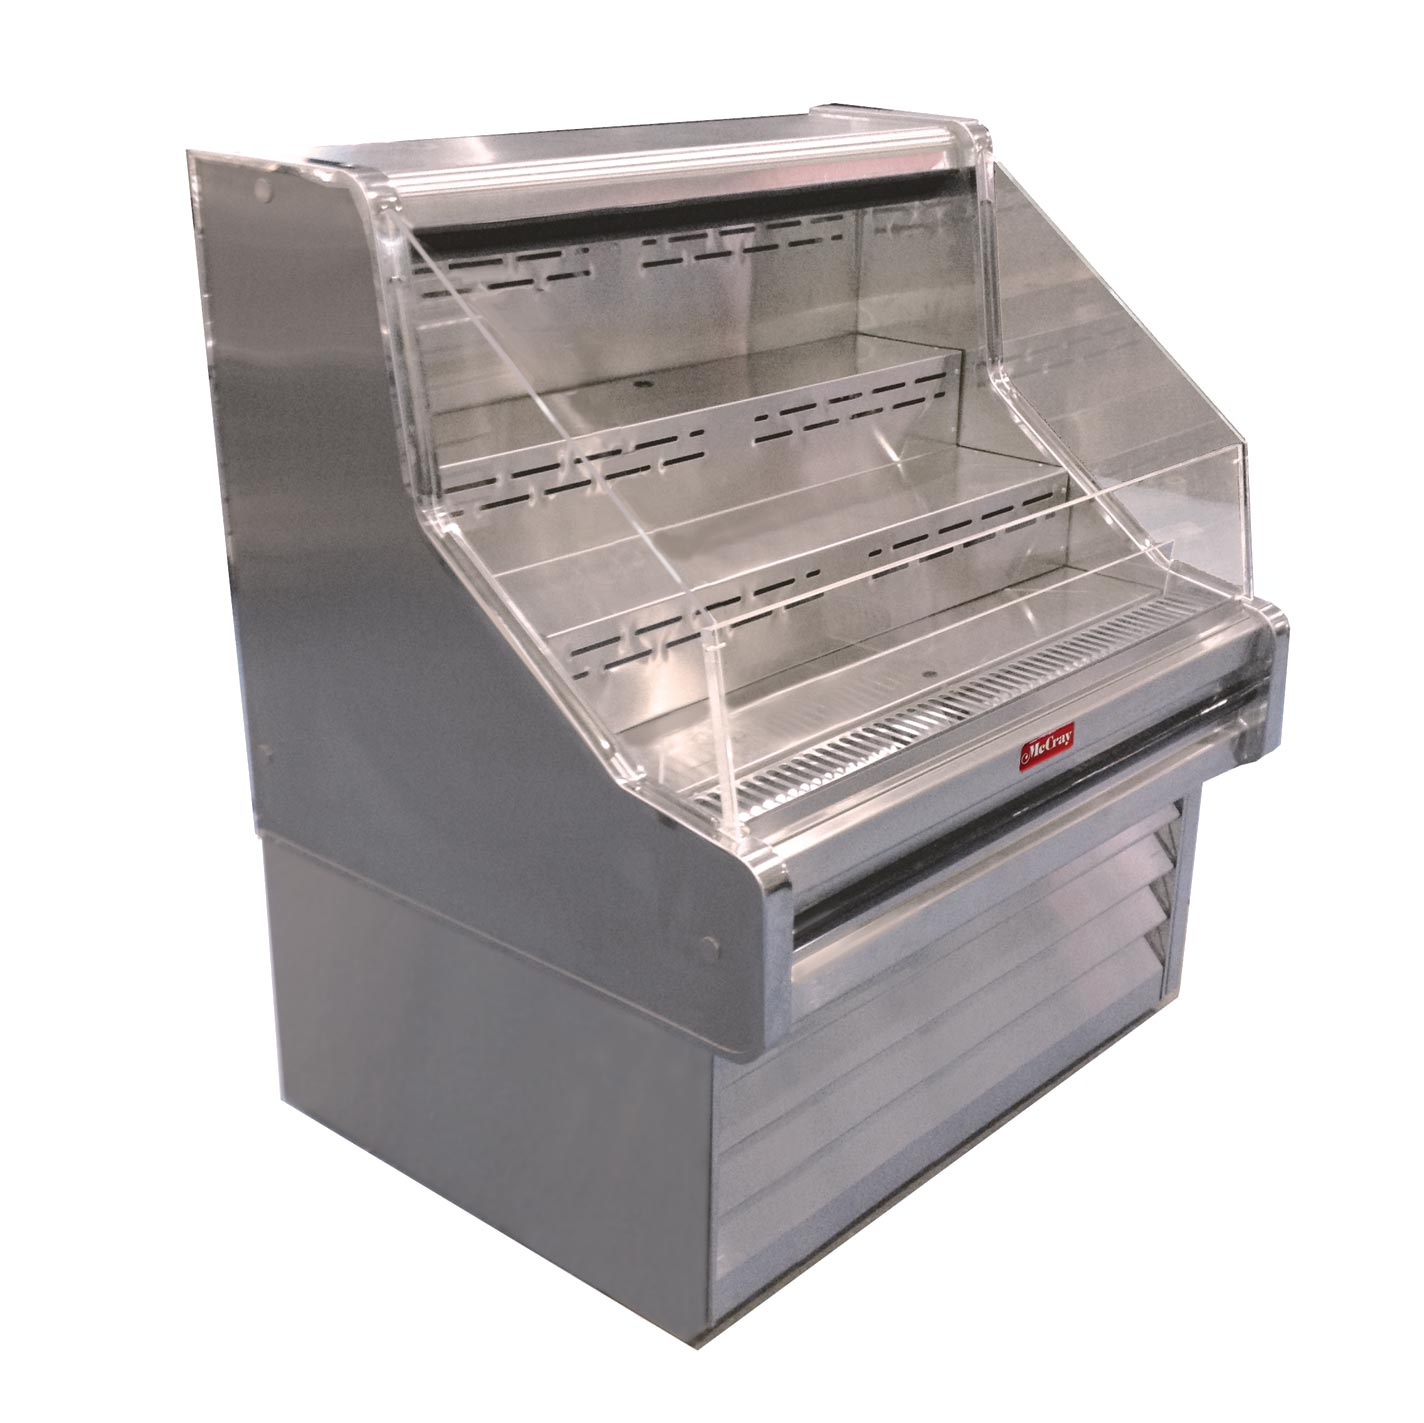 Howard-McCray R-OS35E-5-LED merchandiser, open refrigerated display